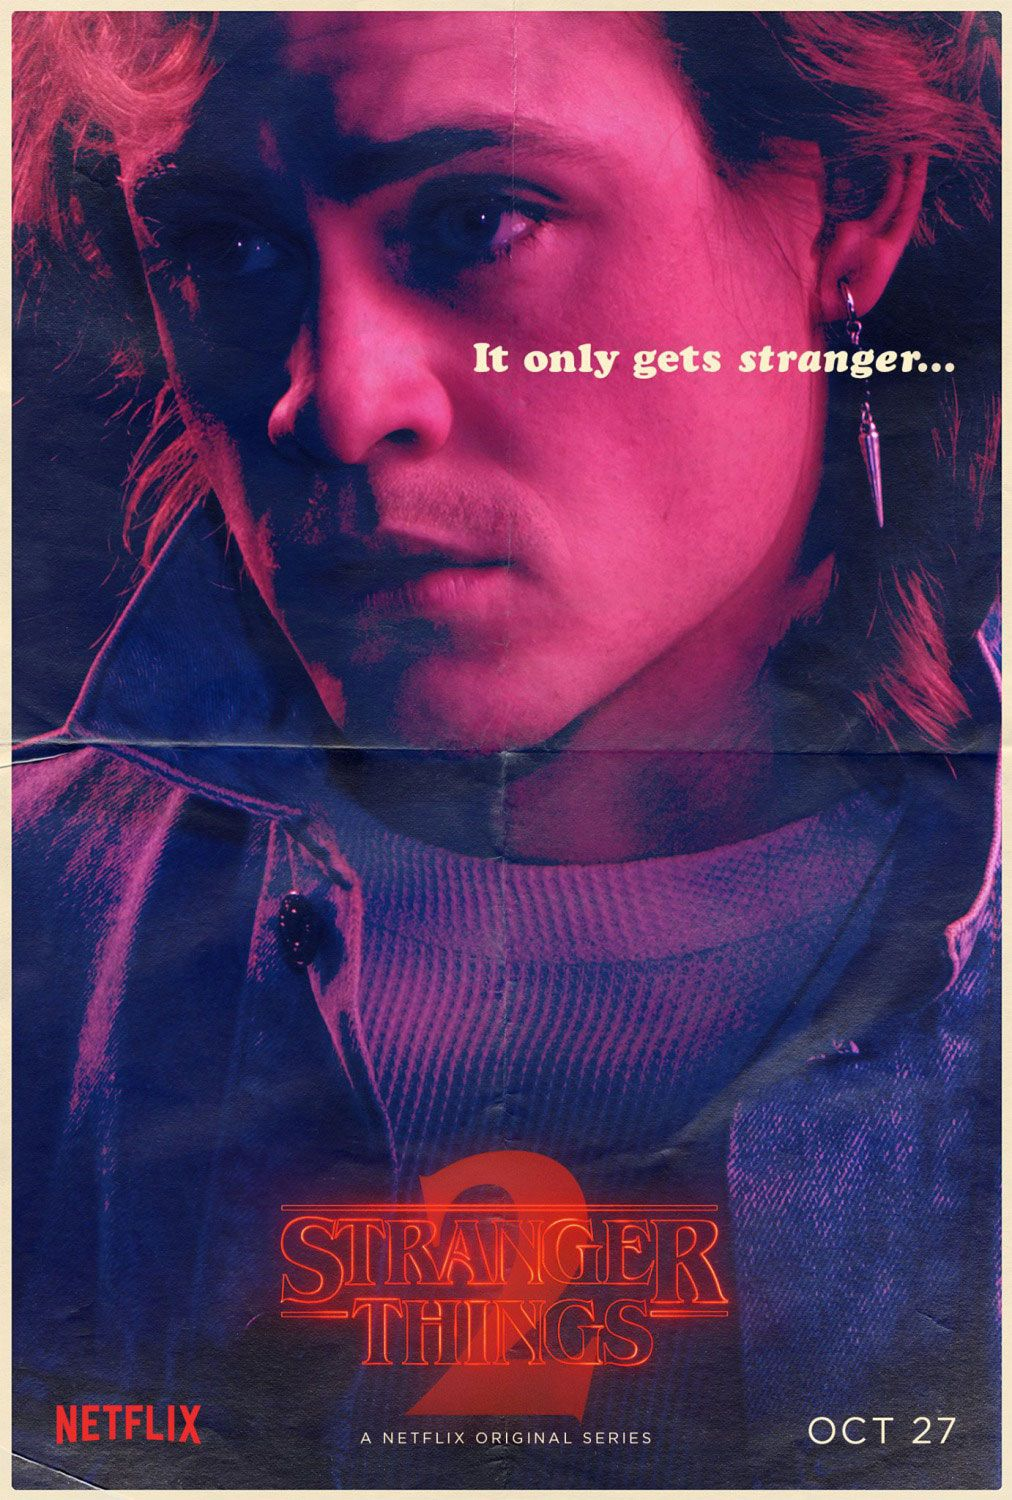 Stranger Things Billy Hargrove poster